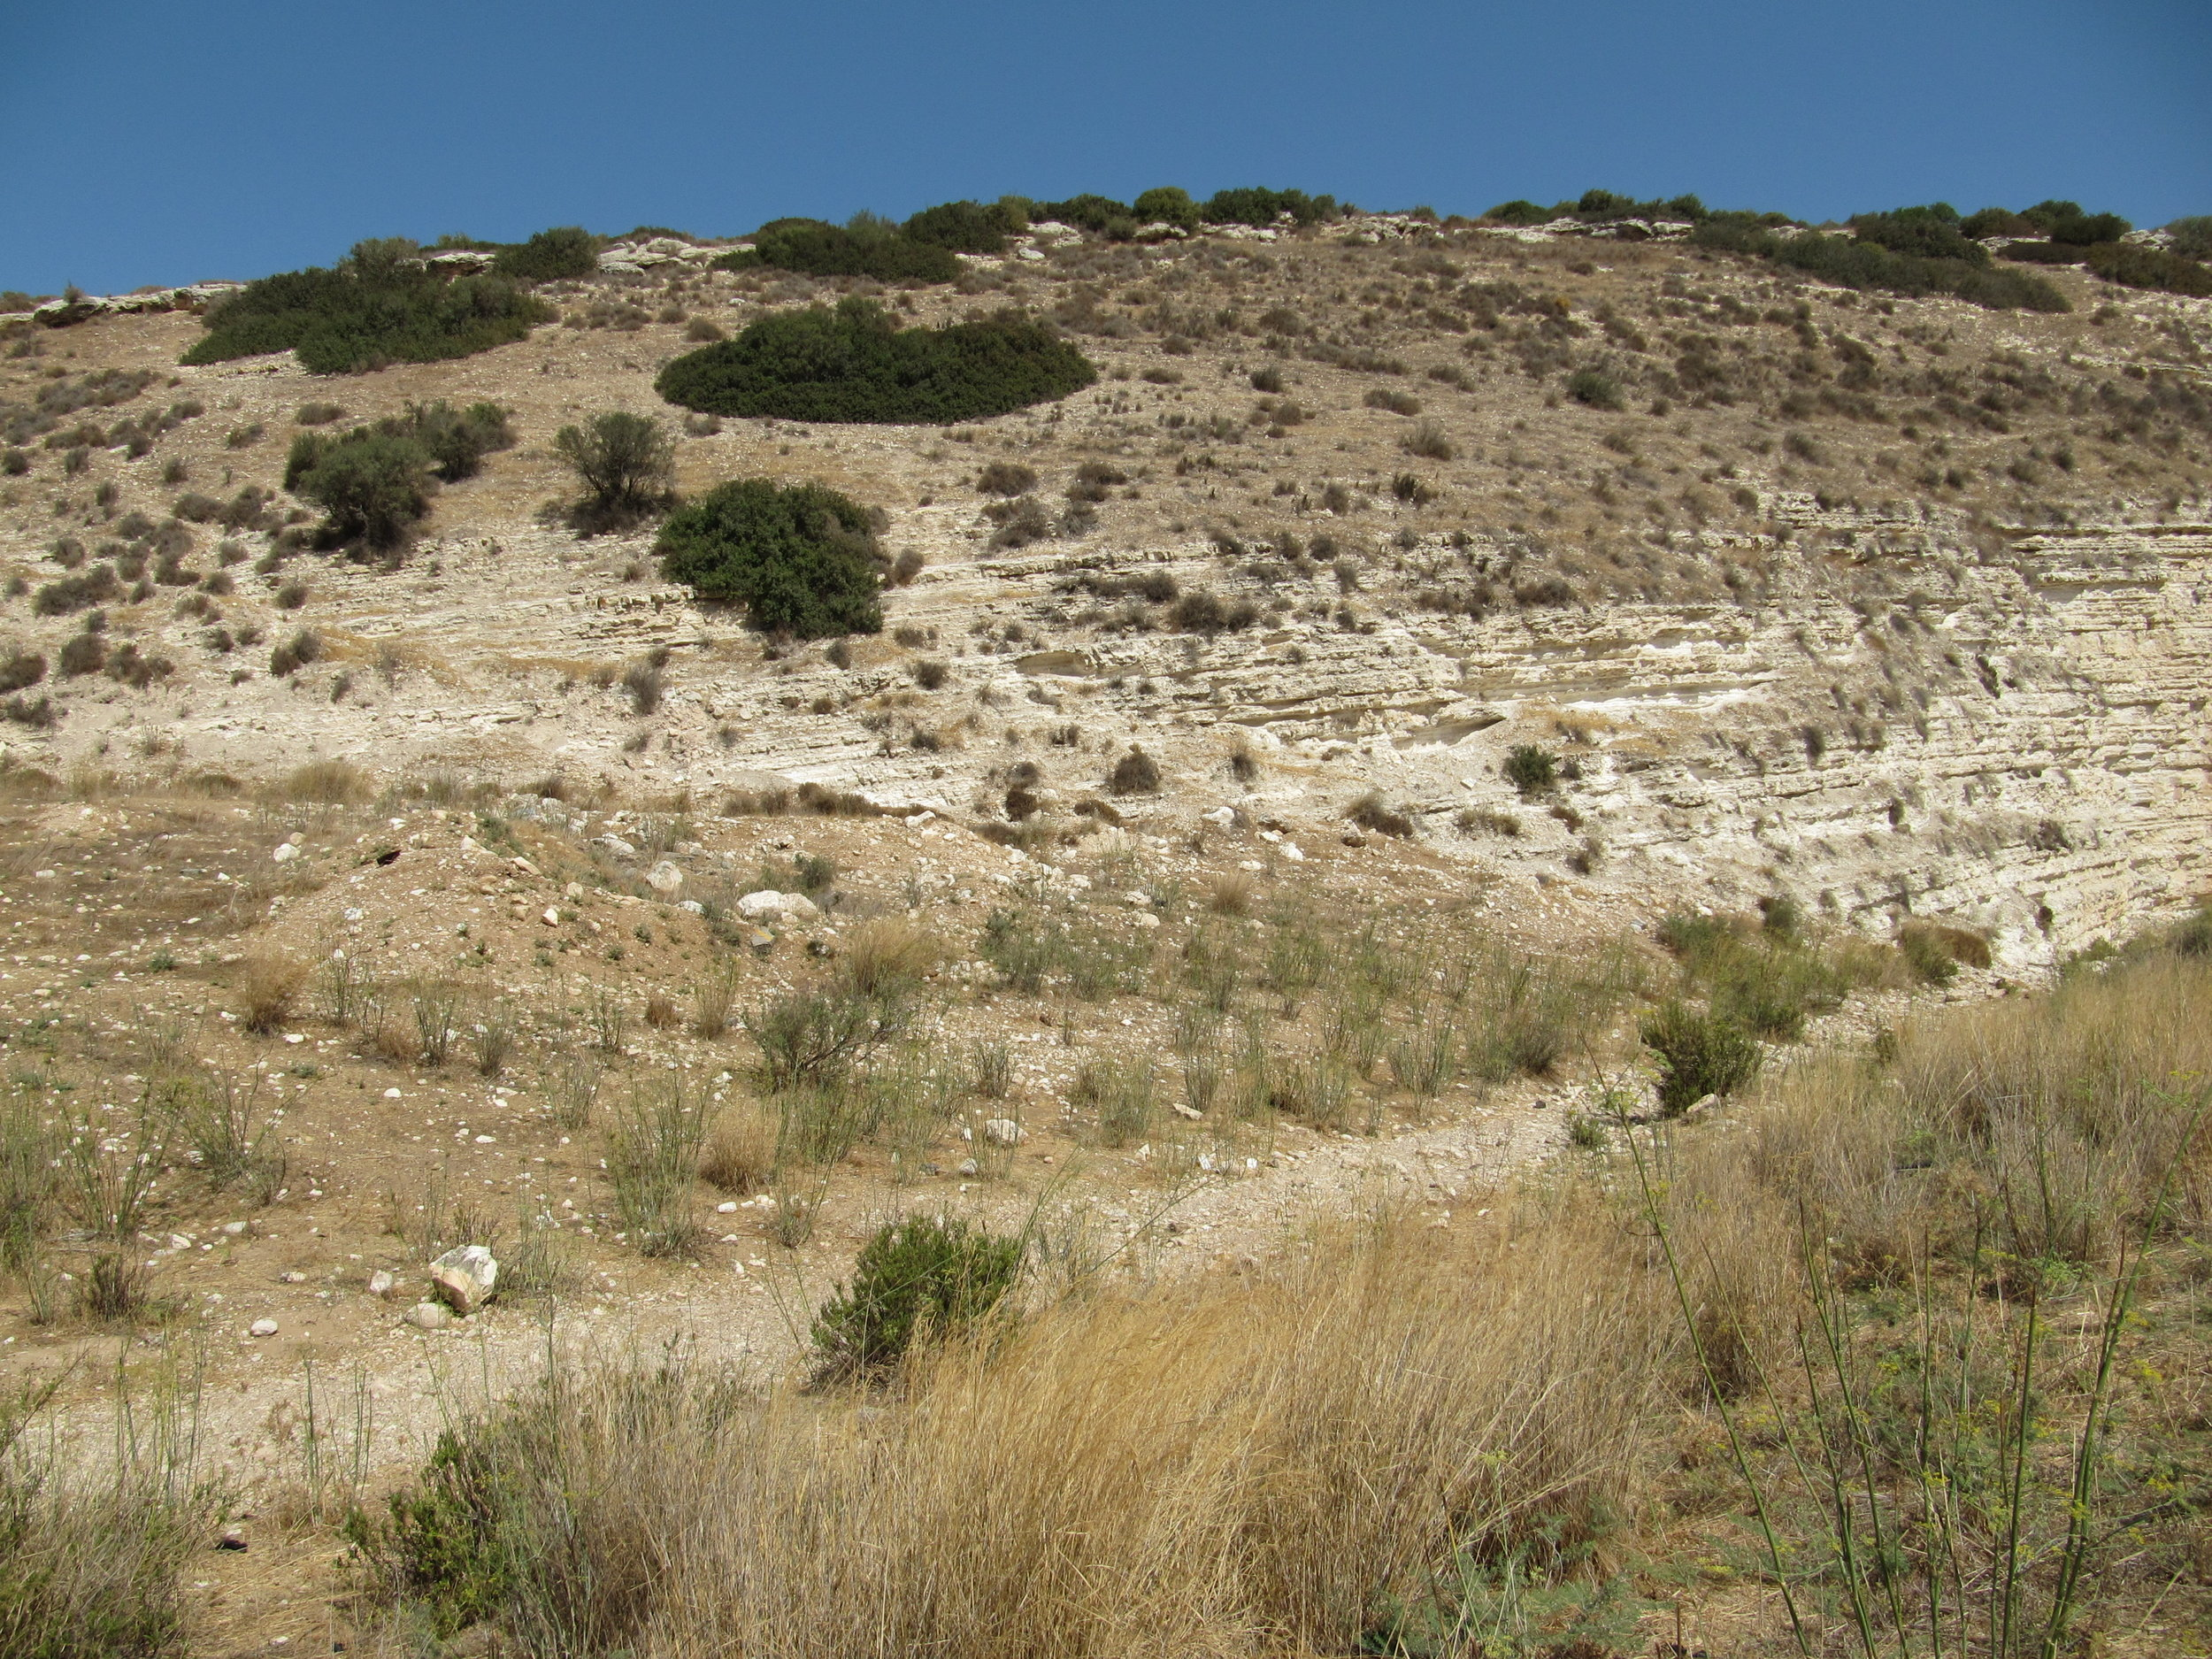 The ancient mound of Socoh - Notice the dry creek bed where water naturally flows...